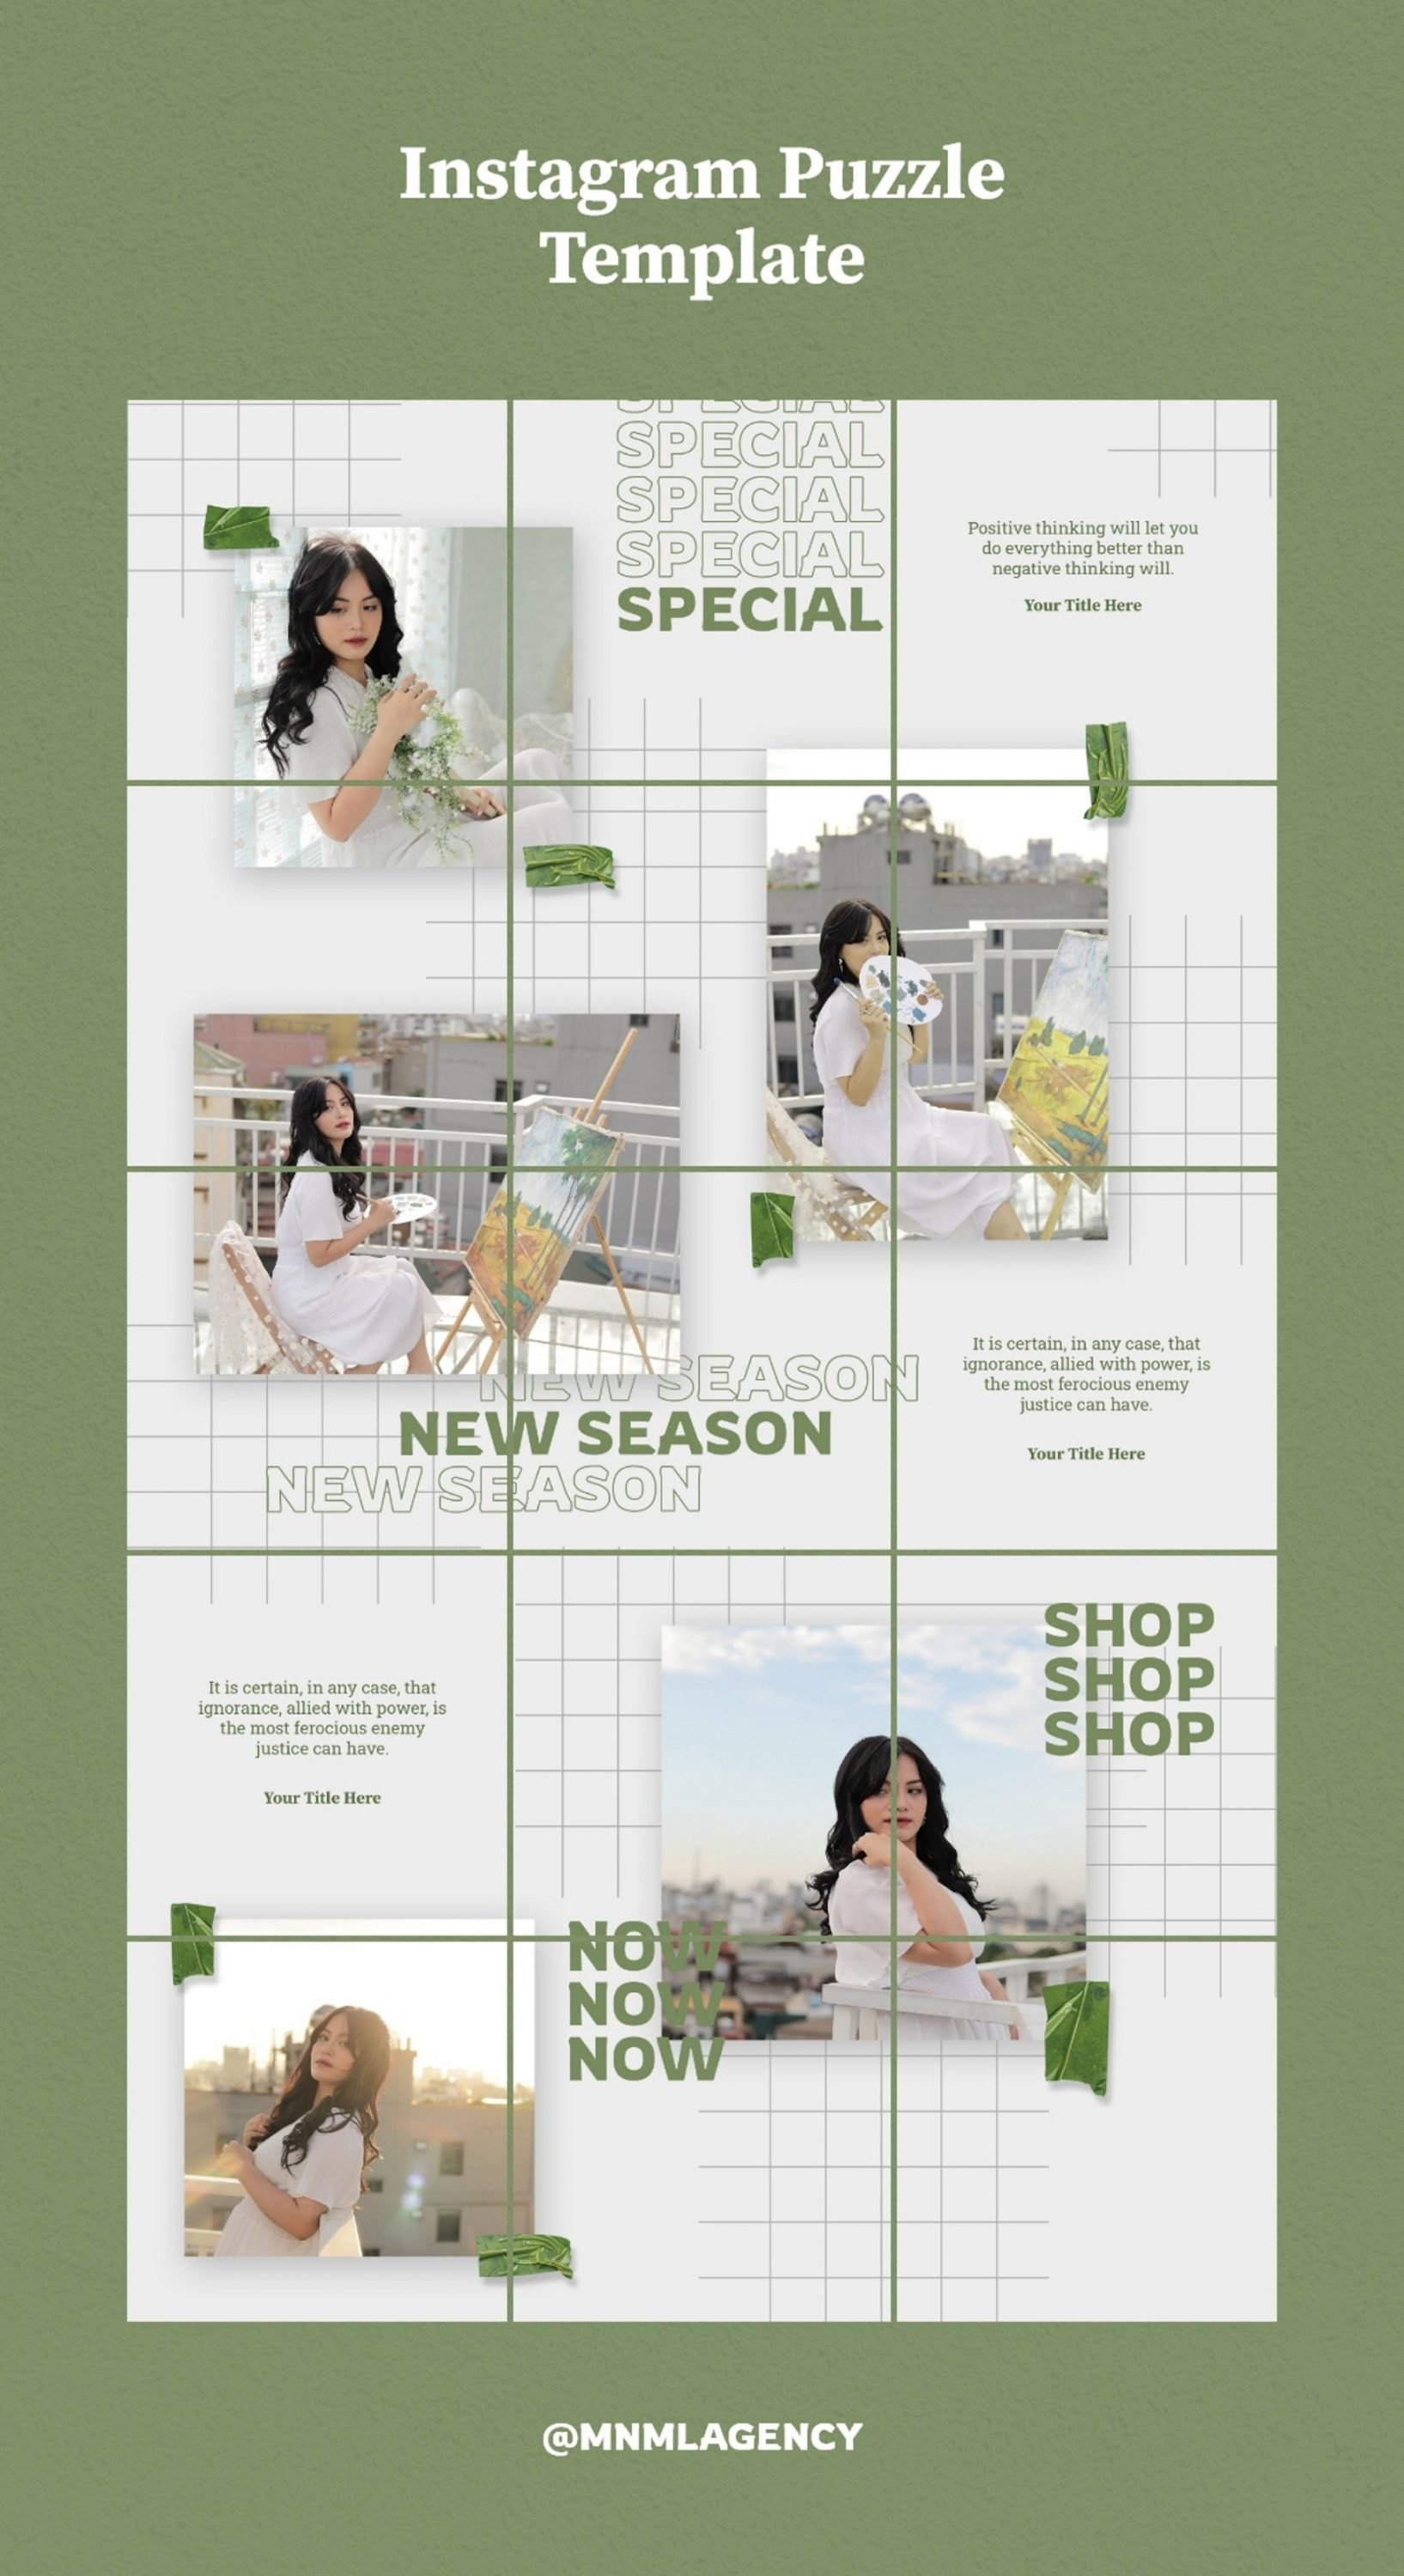 A green template with lovely elements and a simple design.